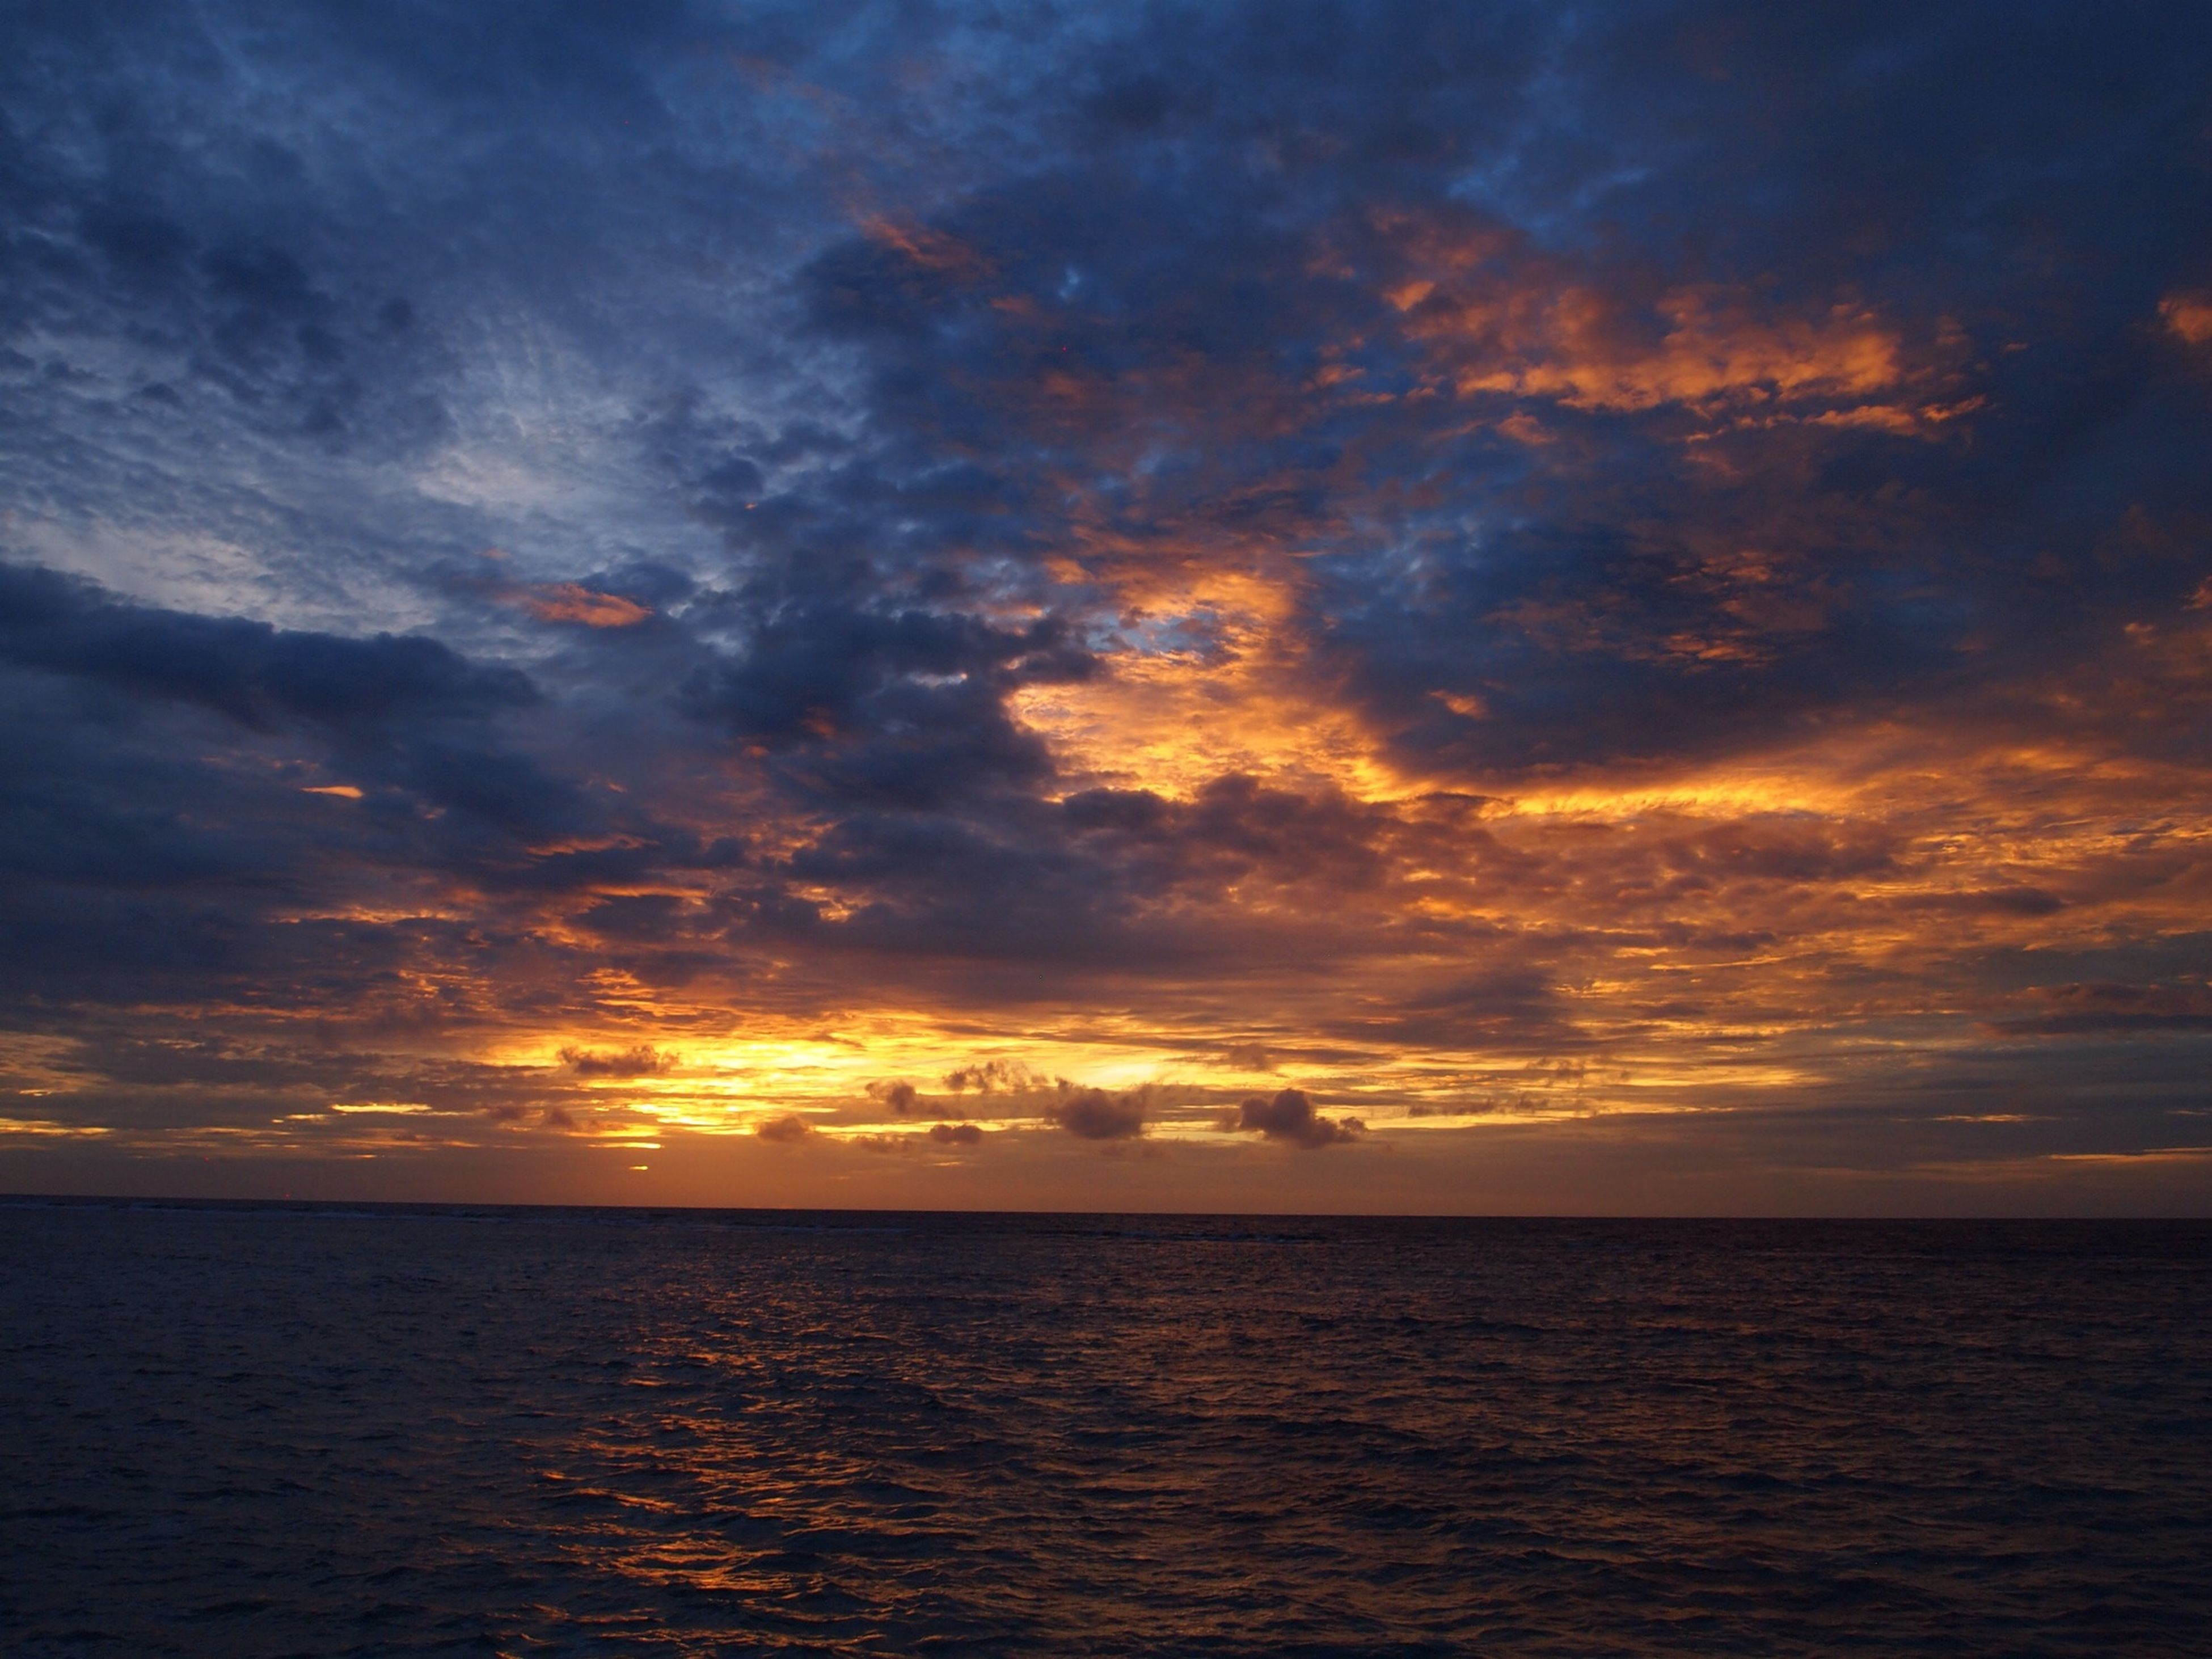 sunset, sea, scenics, sky, tranquil scene, beauty in nature, tranquility, horizon over water, water, waterfront, cloud - sky, orange color, idyllic, nature, cloud, cloudy, dramatic sky, rippled, moody sky, seascape